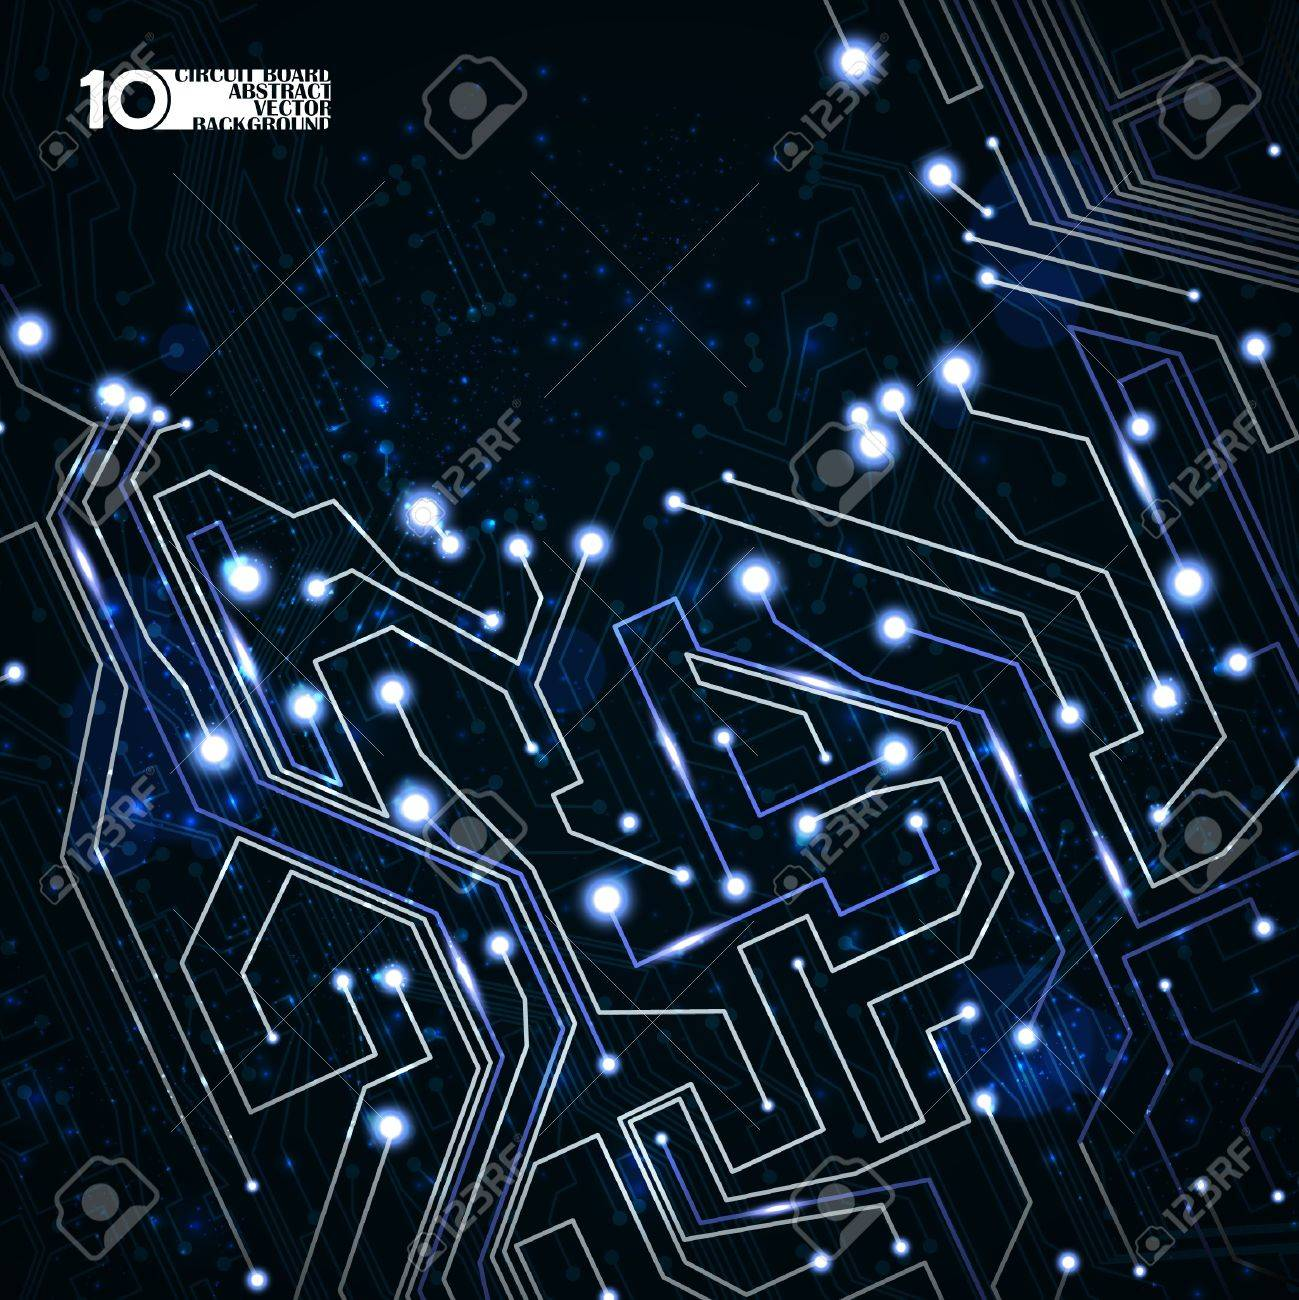 circuit board vector background, technology illustration eps10 Stock Vector - 11656674